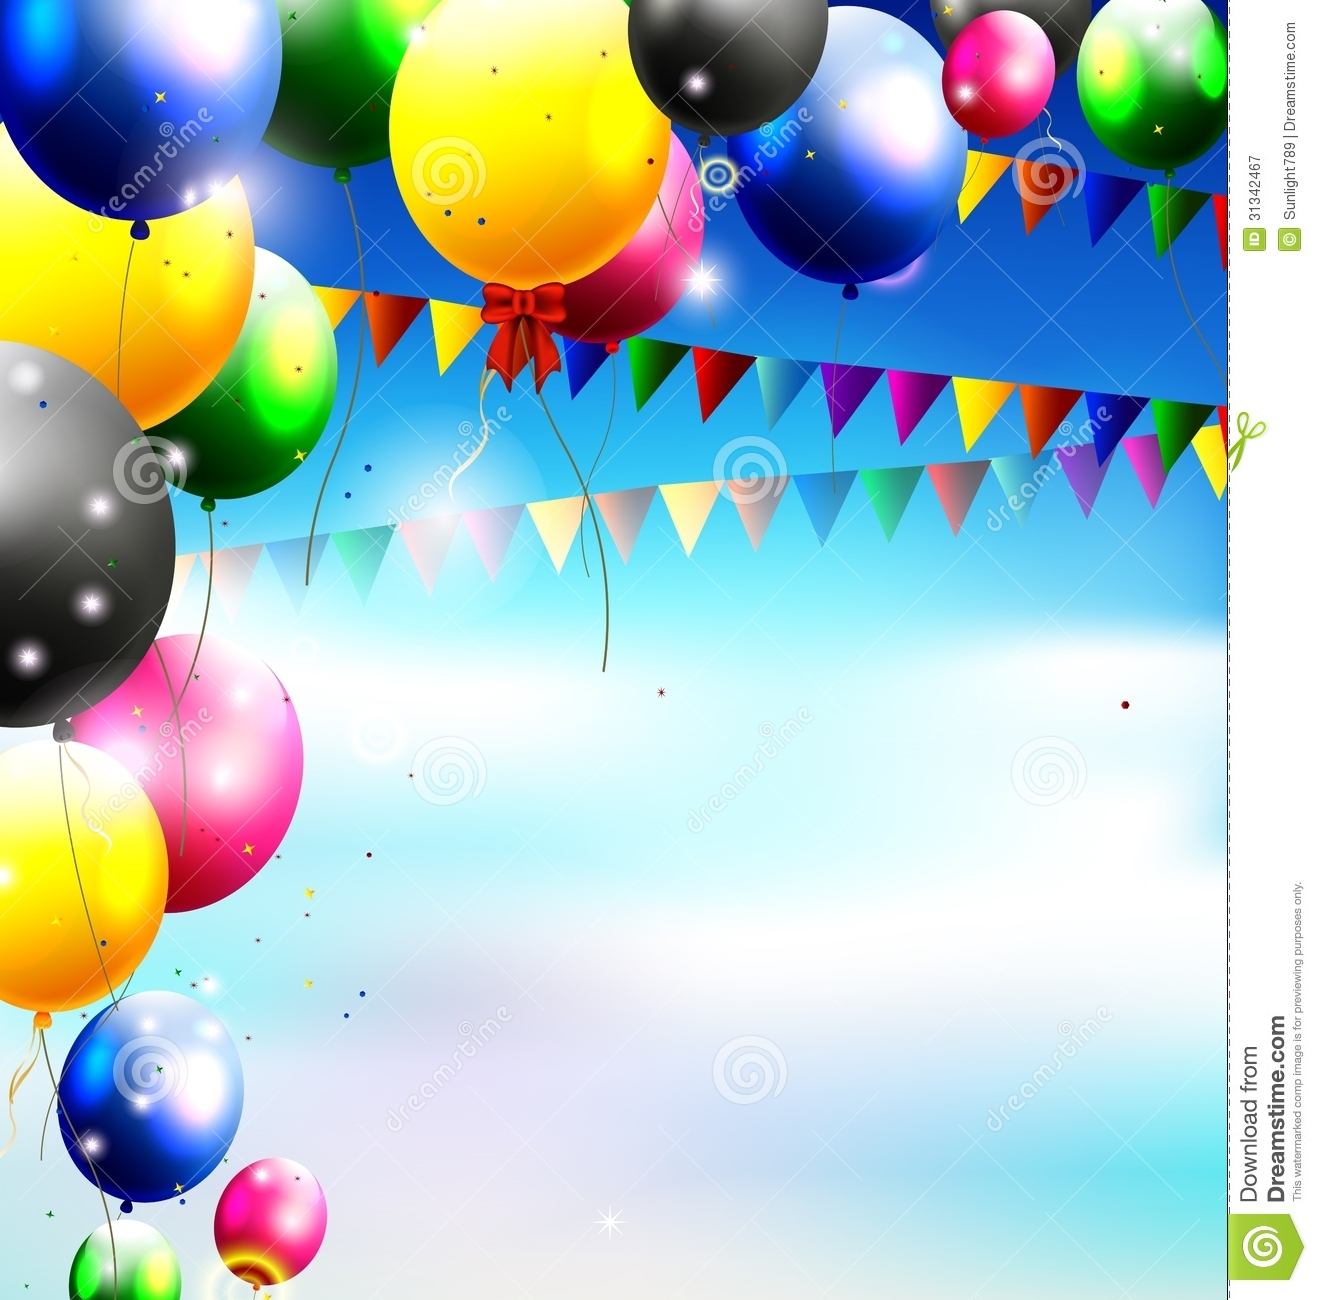 balloons in the sky for birthday background royalty free